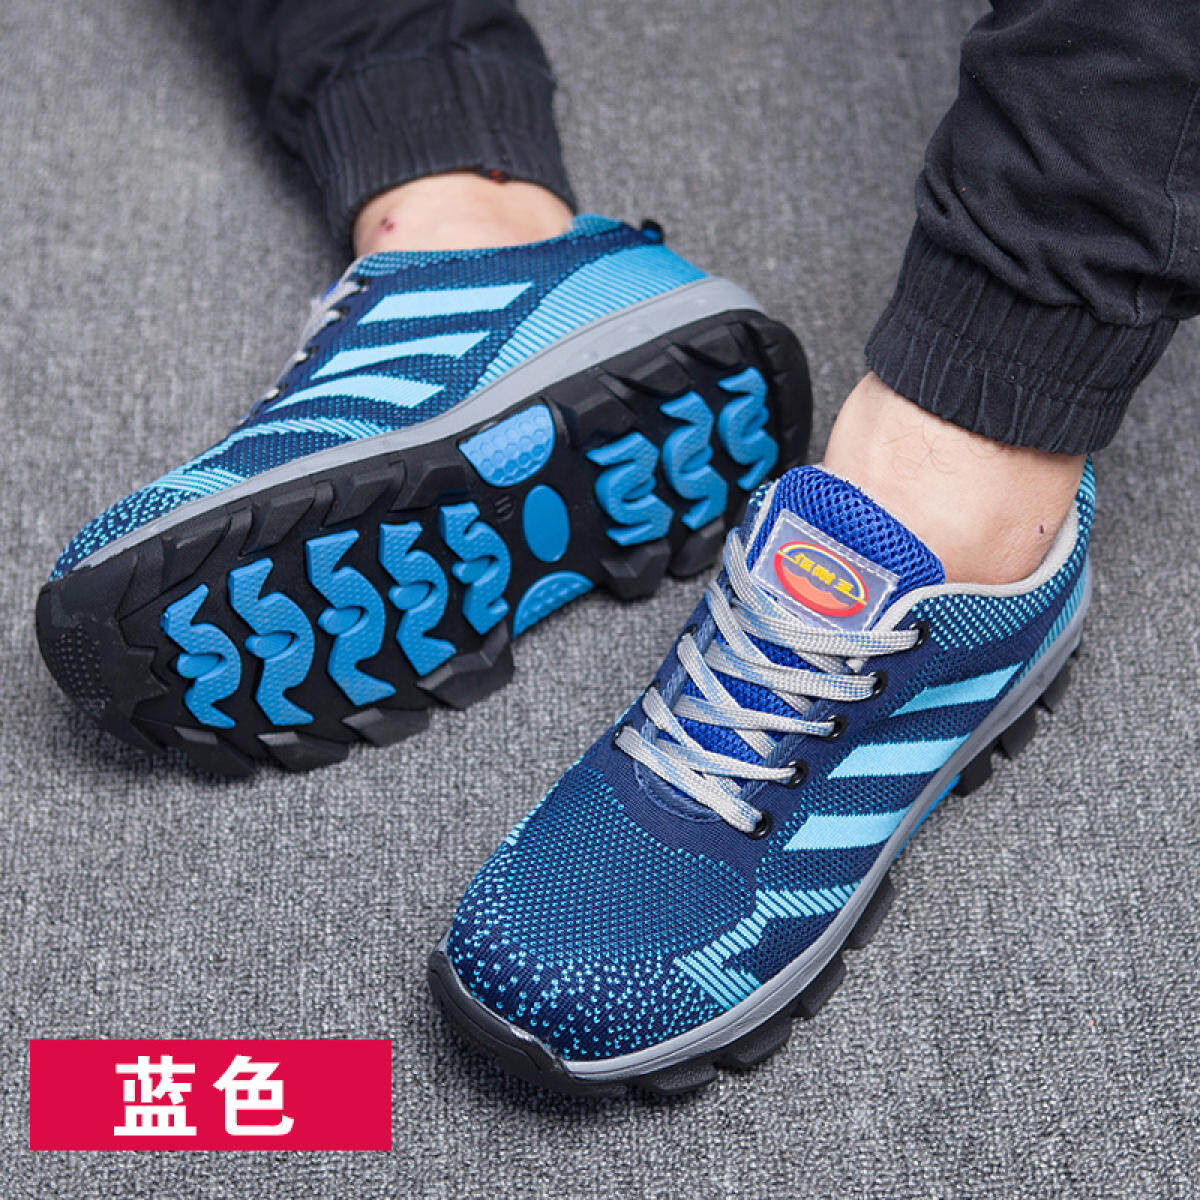 Men Boots & Shoes Online With Best Price in Malaysia